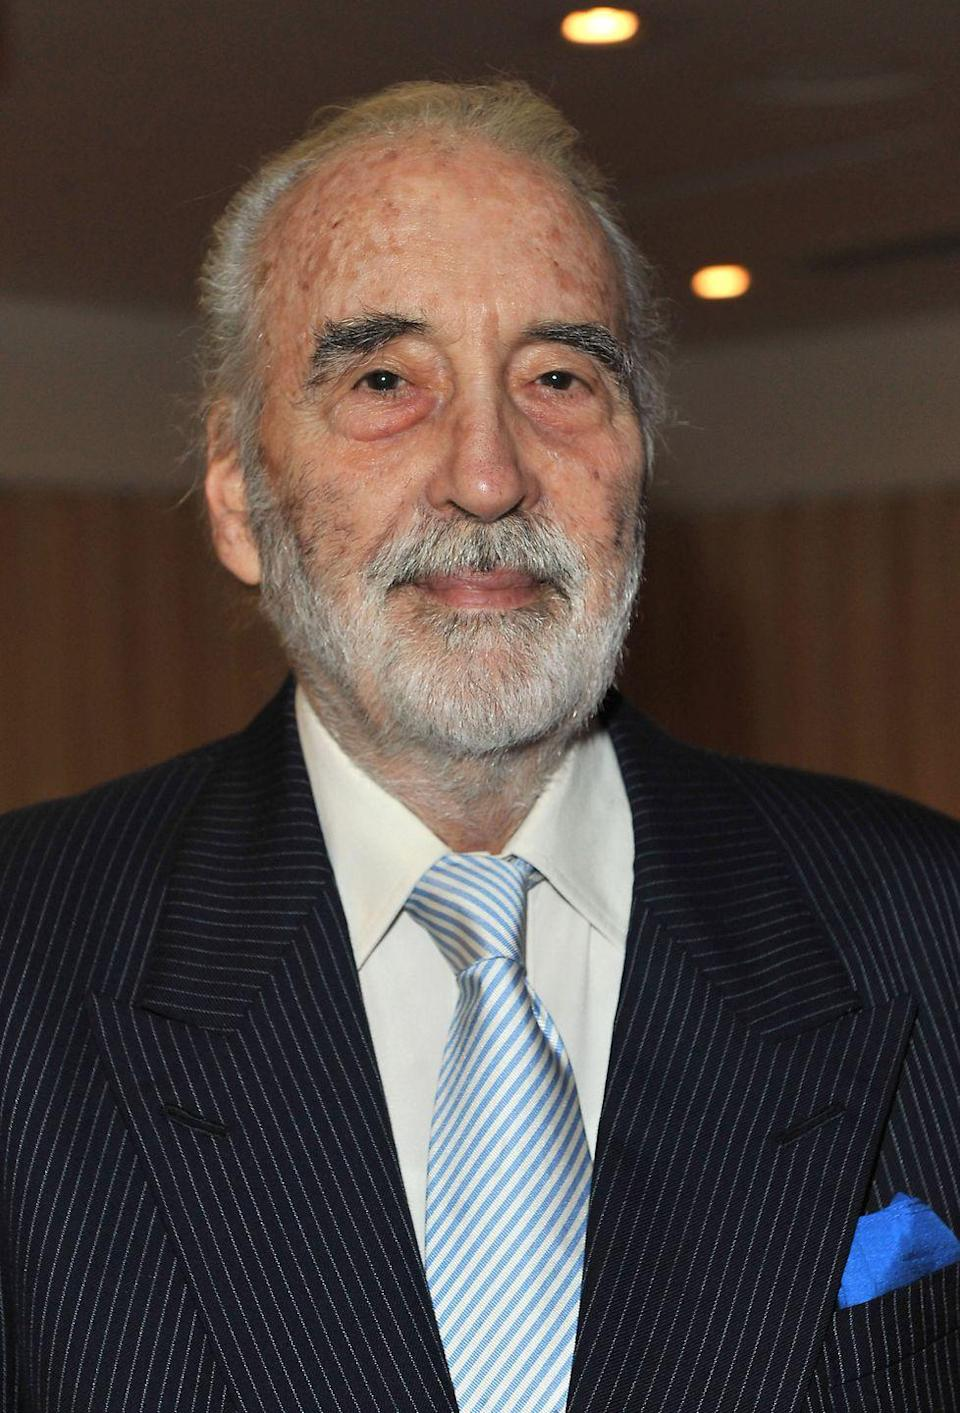 """<p>After appearing as the wizard Saruman in Peter Jackson's <em>Lord of the Rings</em> films, Christopher Lee was """"shocked"""" when he found out that he had been completely edited out of the franchise's final film. The actor was so insulted, he decided <a href=""""https://www.theguardian.com/film/2003/nov/13/lordoftherings.news"""" rel=""""nofollow noopener"""" target=""""_blank"""" data-ylk=""""slk:not to attend the film's premiere"""" class=""""link rapid-noclick-resp"""">not to attend the film's premiere</a>. </p>"""